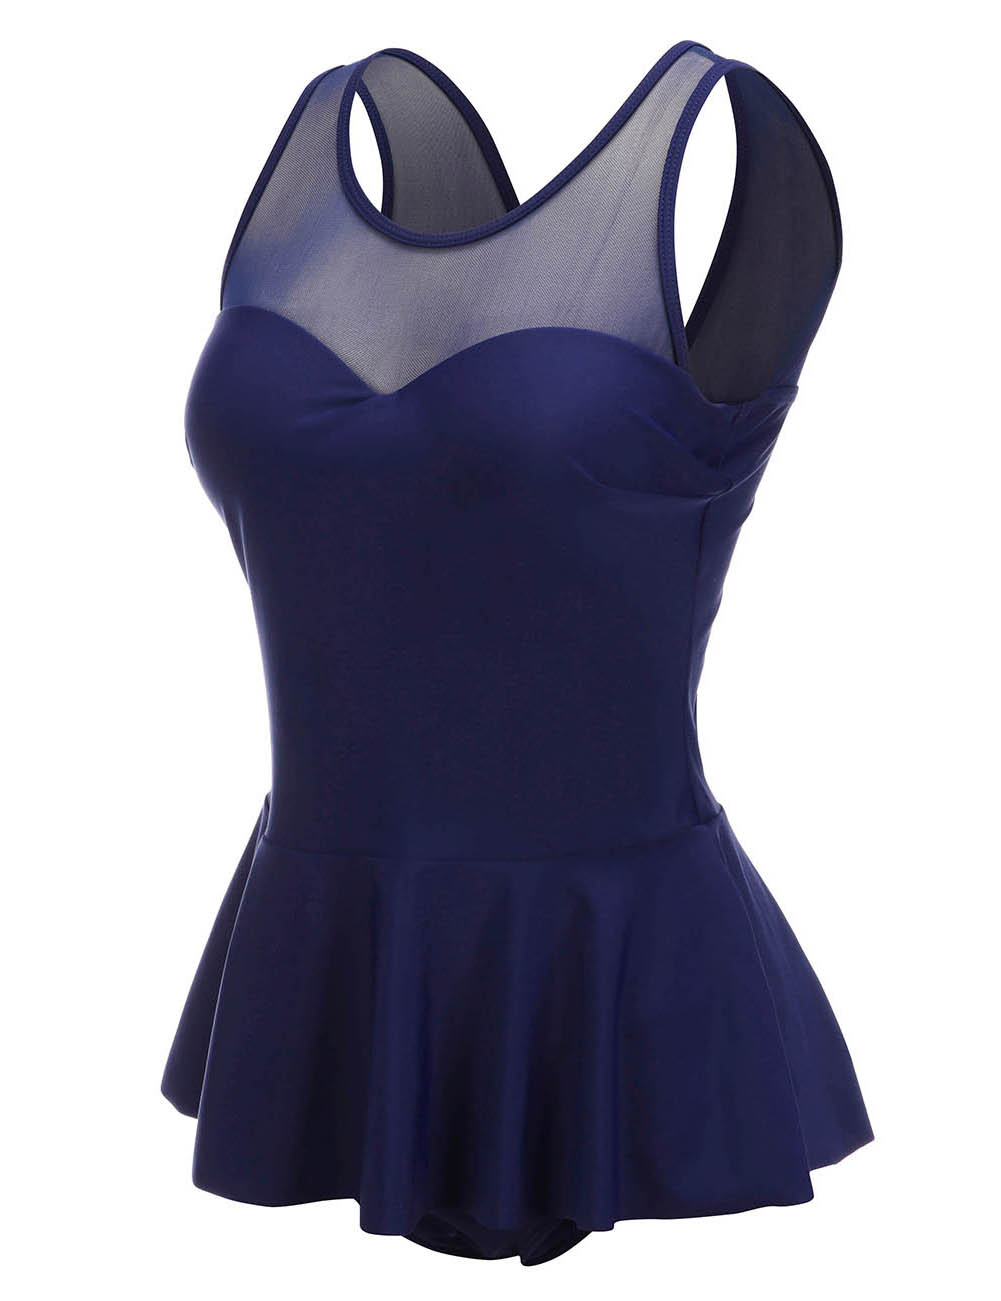 //cdn.affectcloud.com/hexinfashion/upload/imgs/Swimwear/Tankini/F185083-BU6/F185083-BU6-201911055dc11a3aa2431.jpg